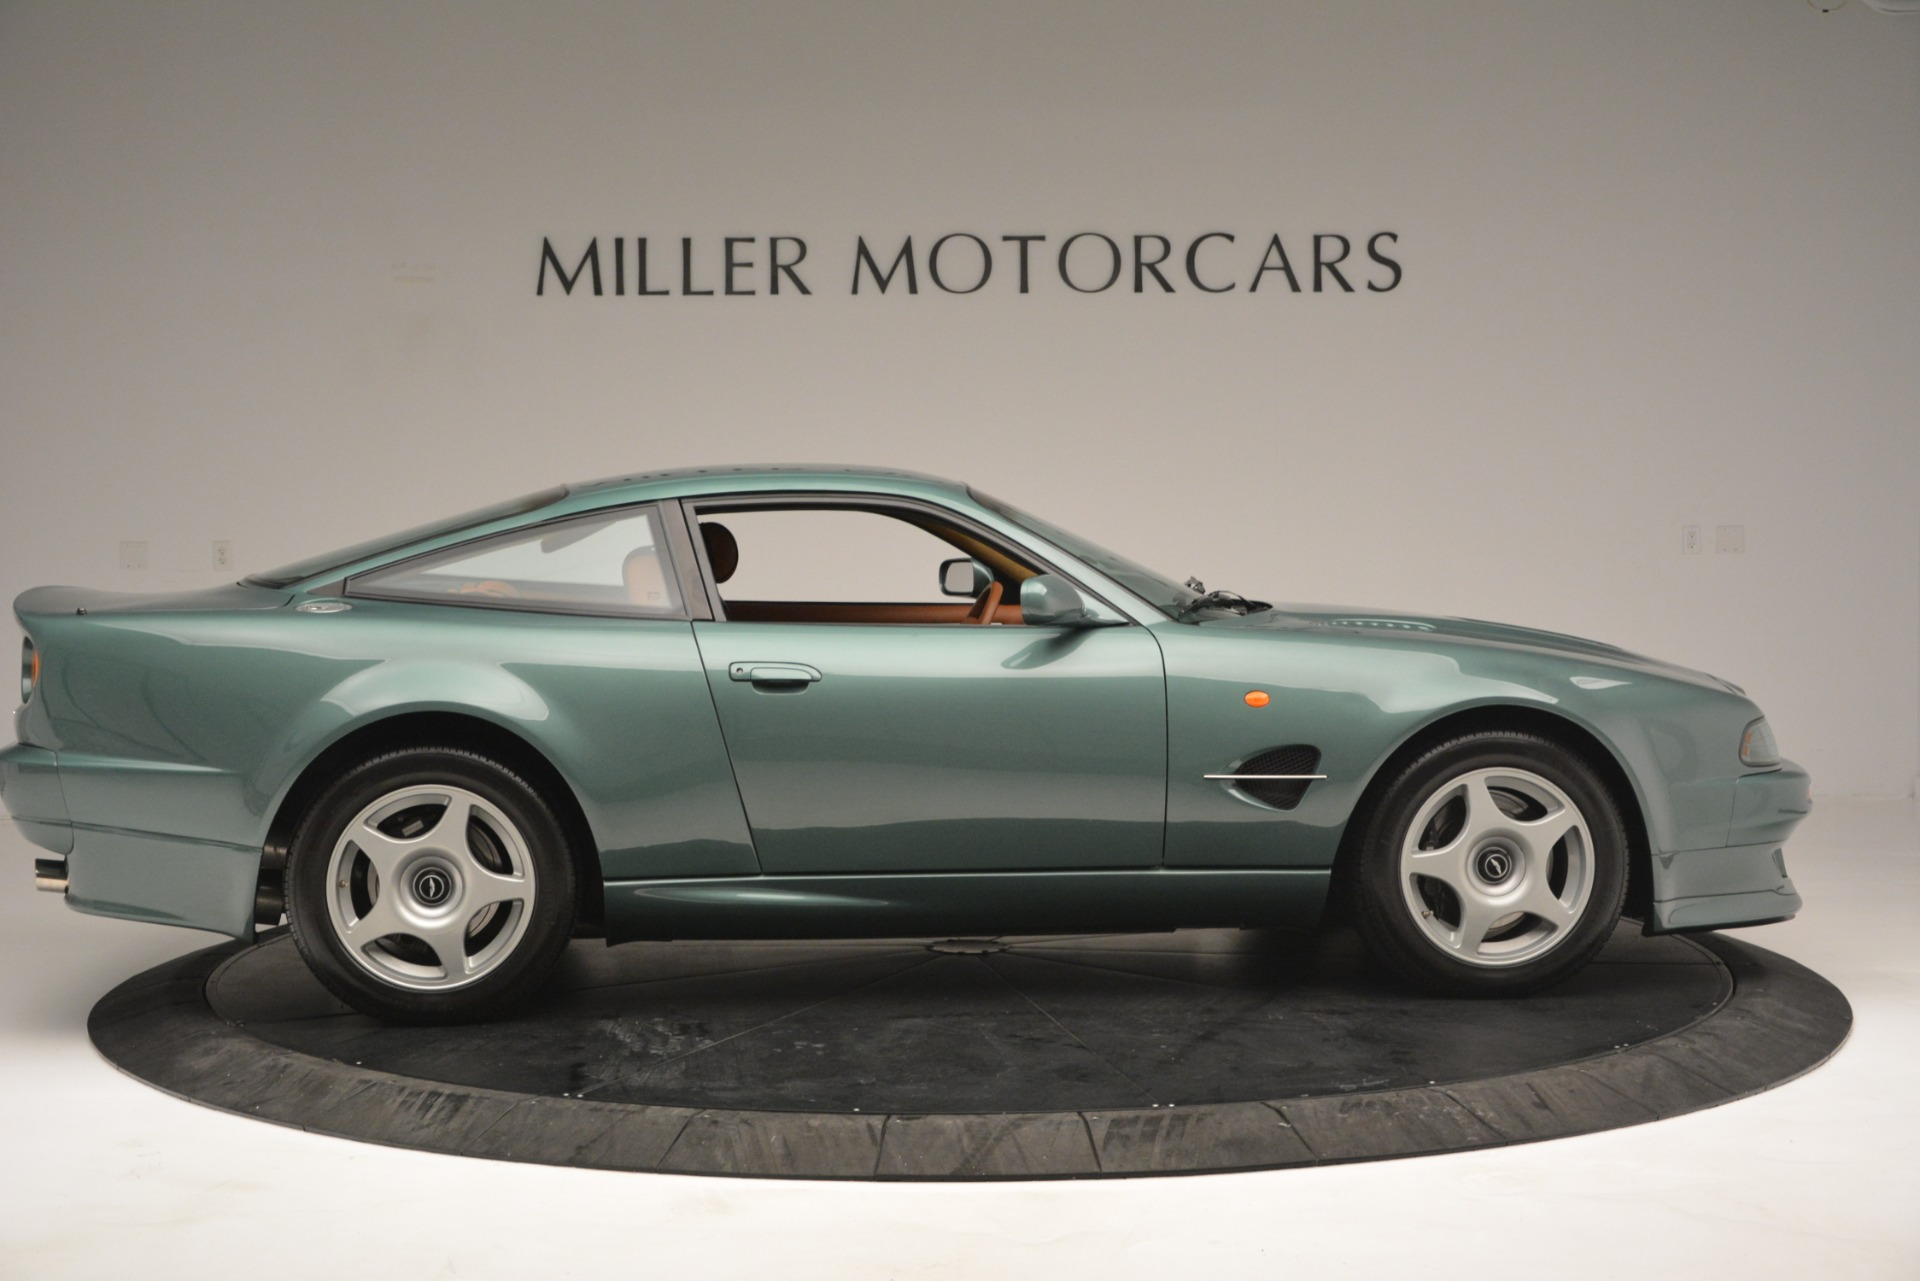 Used 1999 Aston Martin V8 Vantage Le Mans V600 Coupe For Sale In Westport, CT 2789_p10